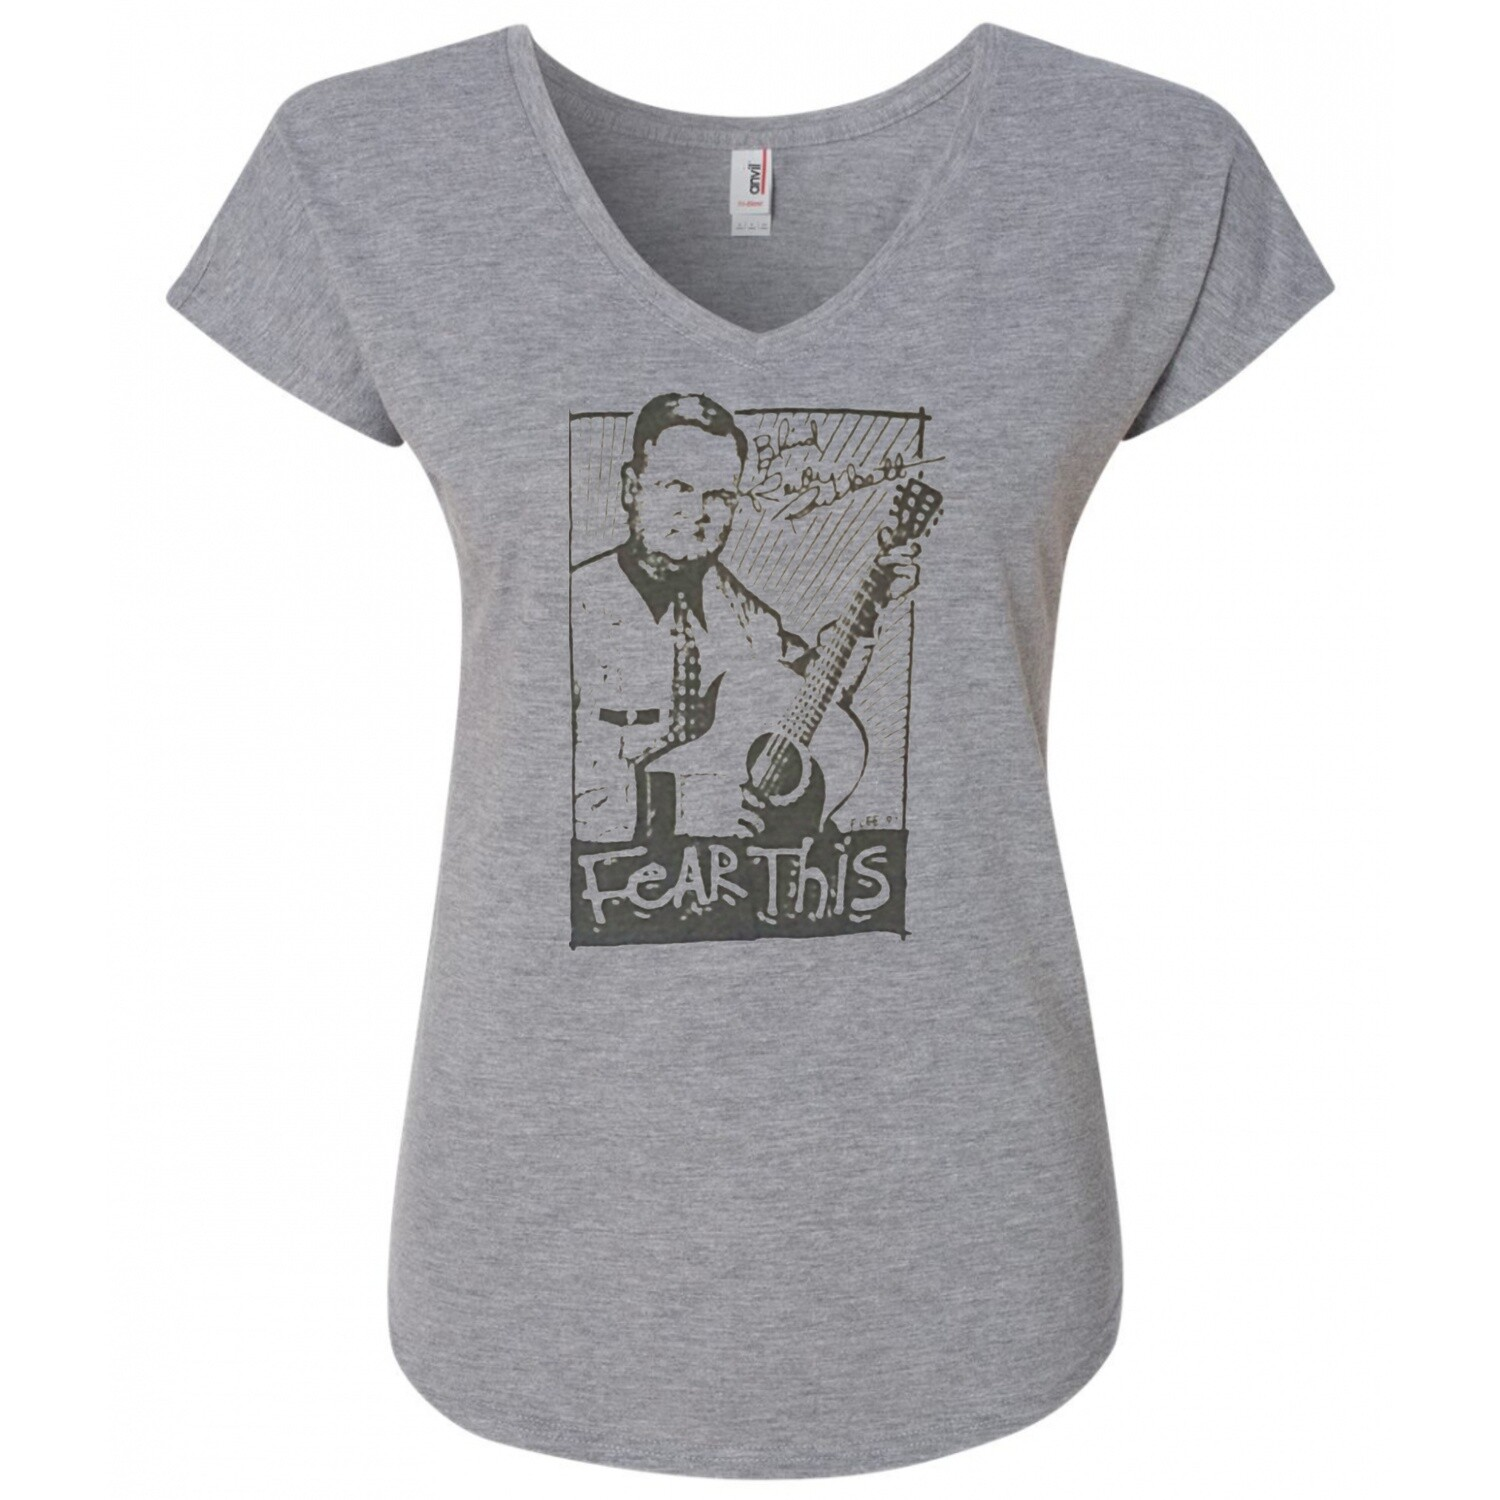 Women's Riley Puckett T-shirt